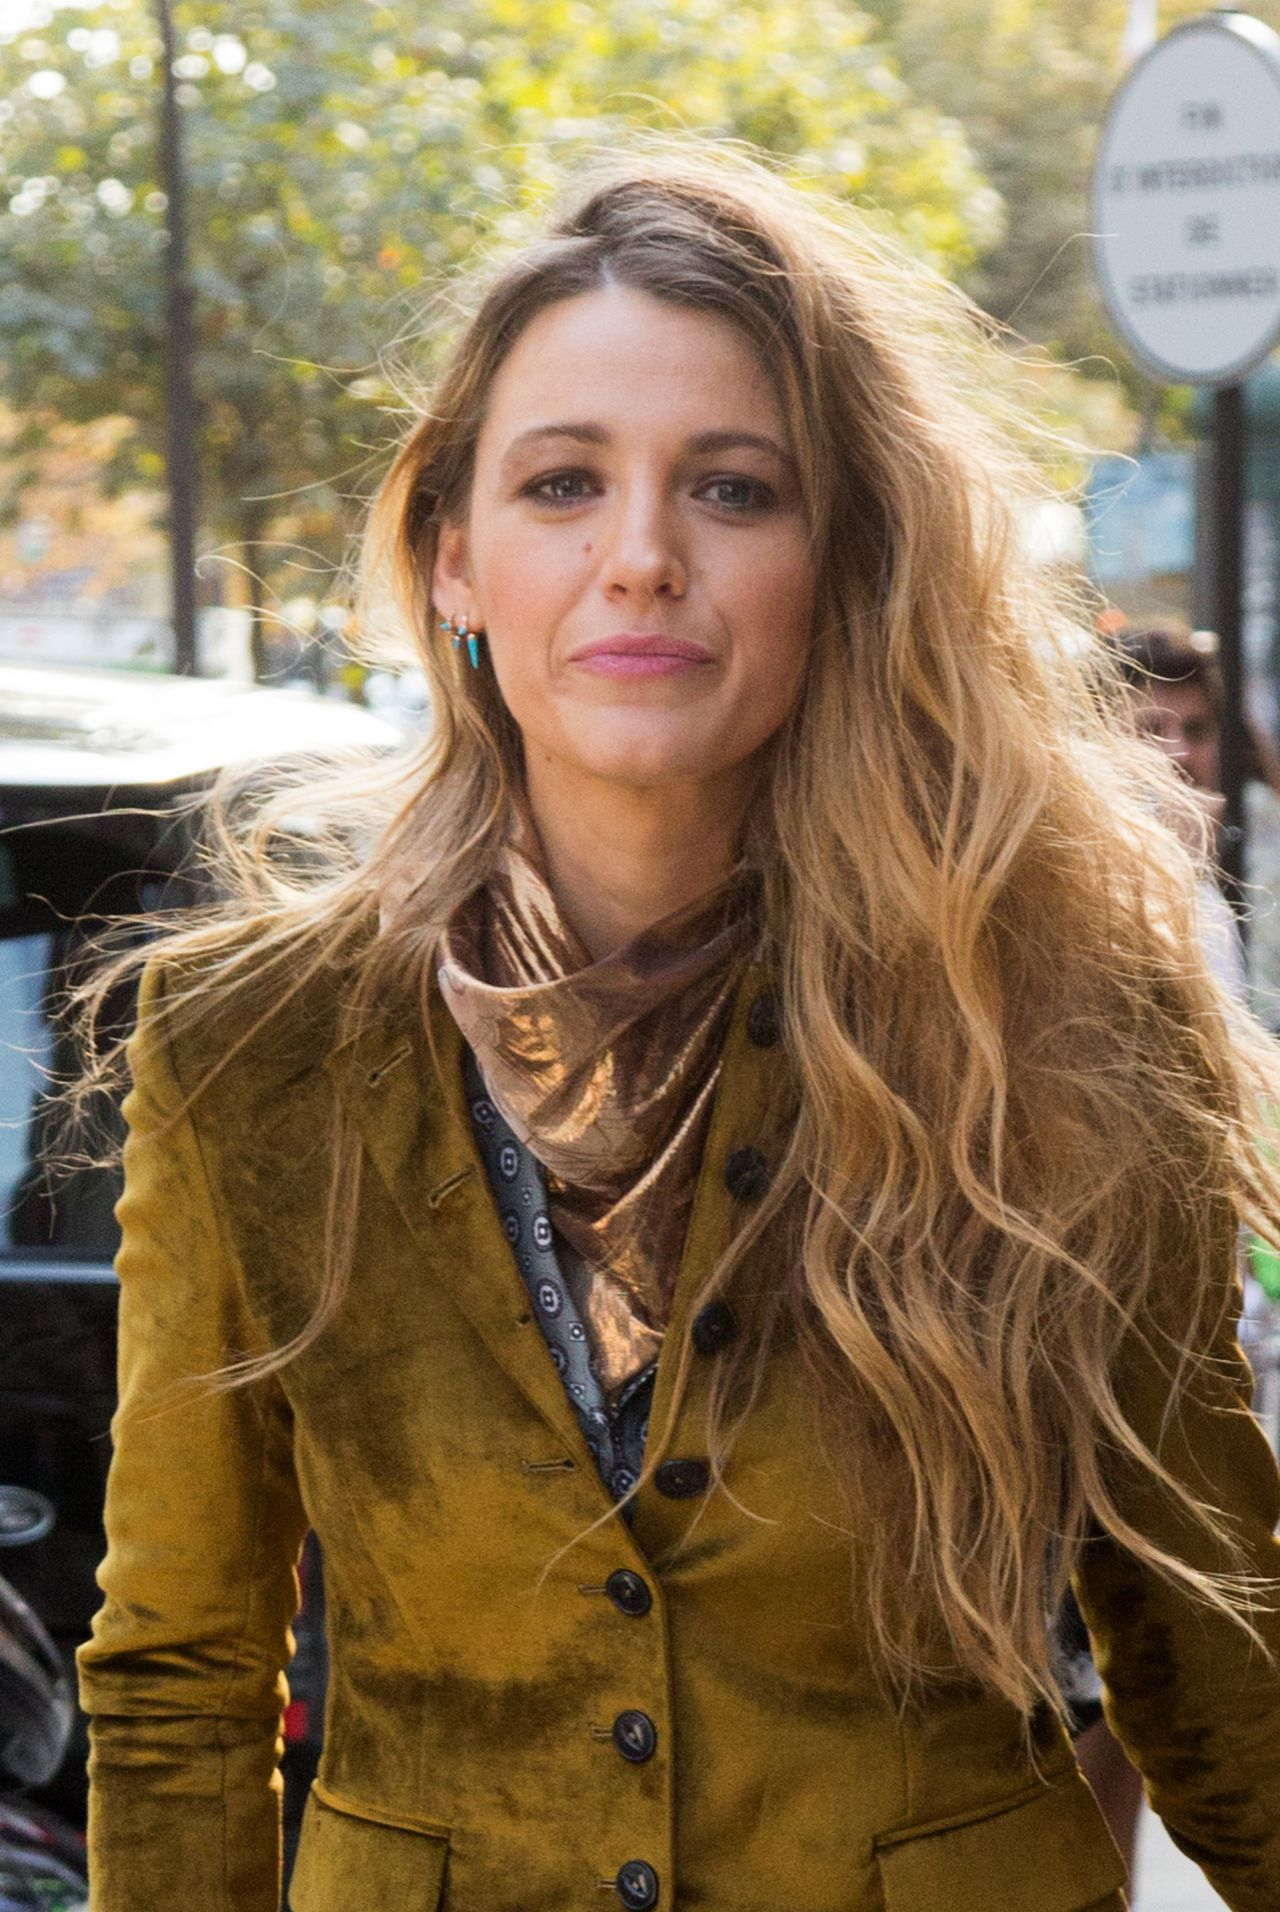 Blake Lively Leaving Her Hotel In Paris 09 20 2018